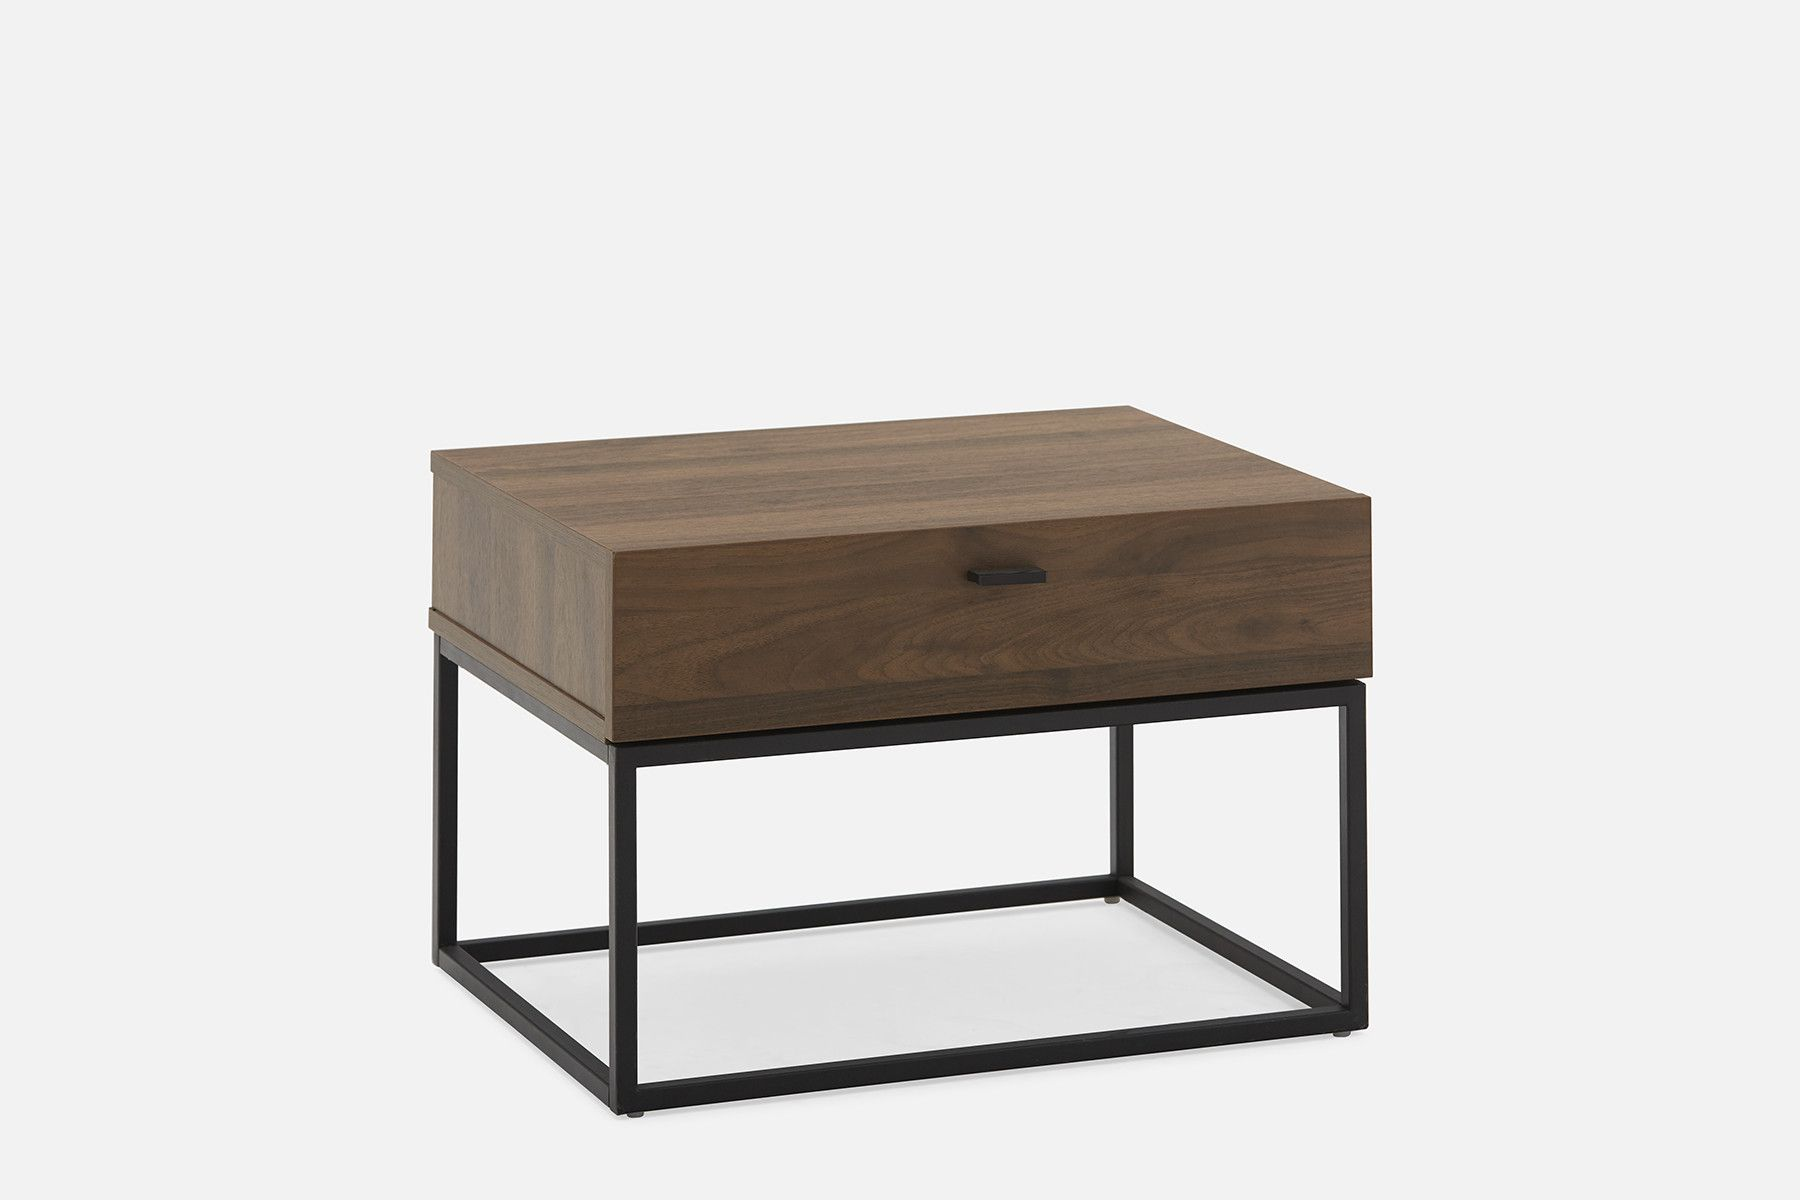 Pin By Duke Tang On Interior Design Bedside Table Walnut Bedside Table Table